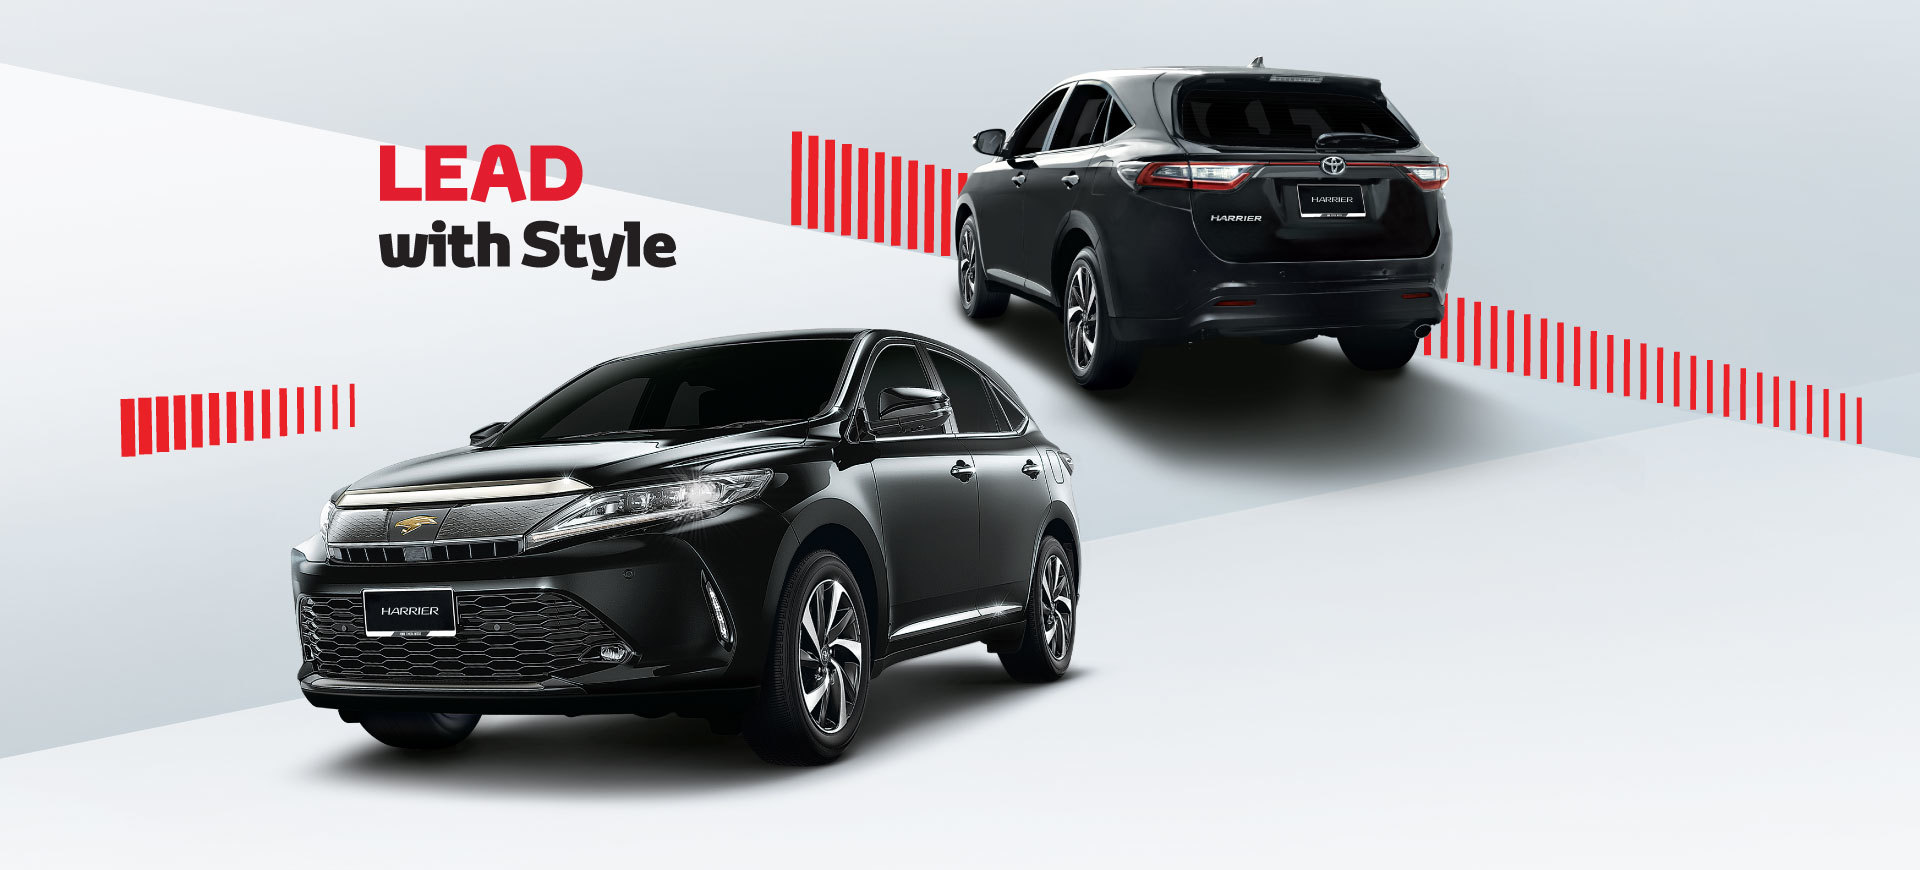 The all-new Toyota Harrier is not only powerful and technologically  advanced, but is also styled dynamically to match the leaders of today's  modern era.